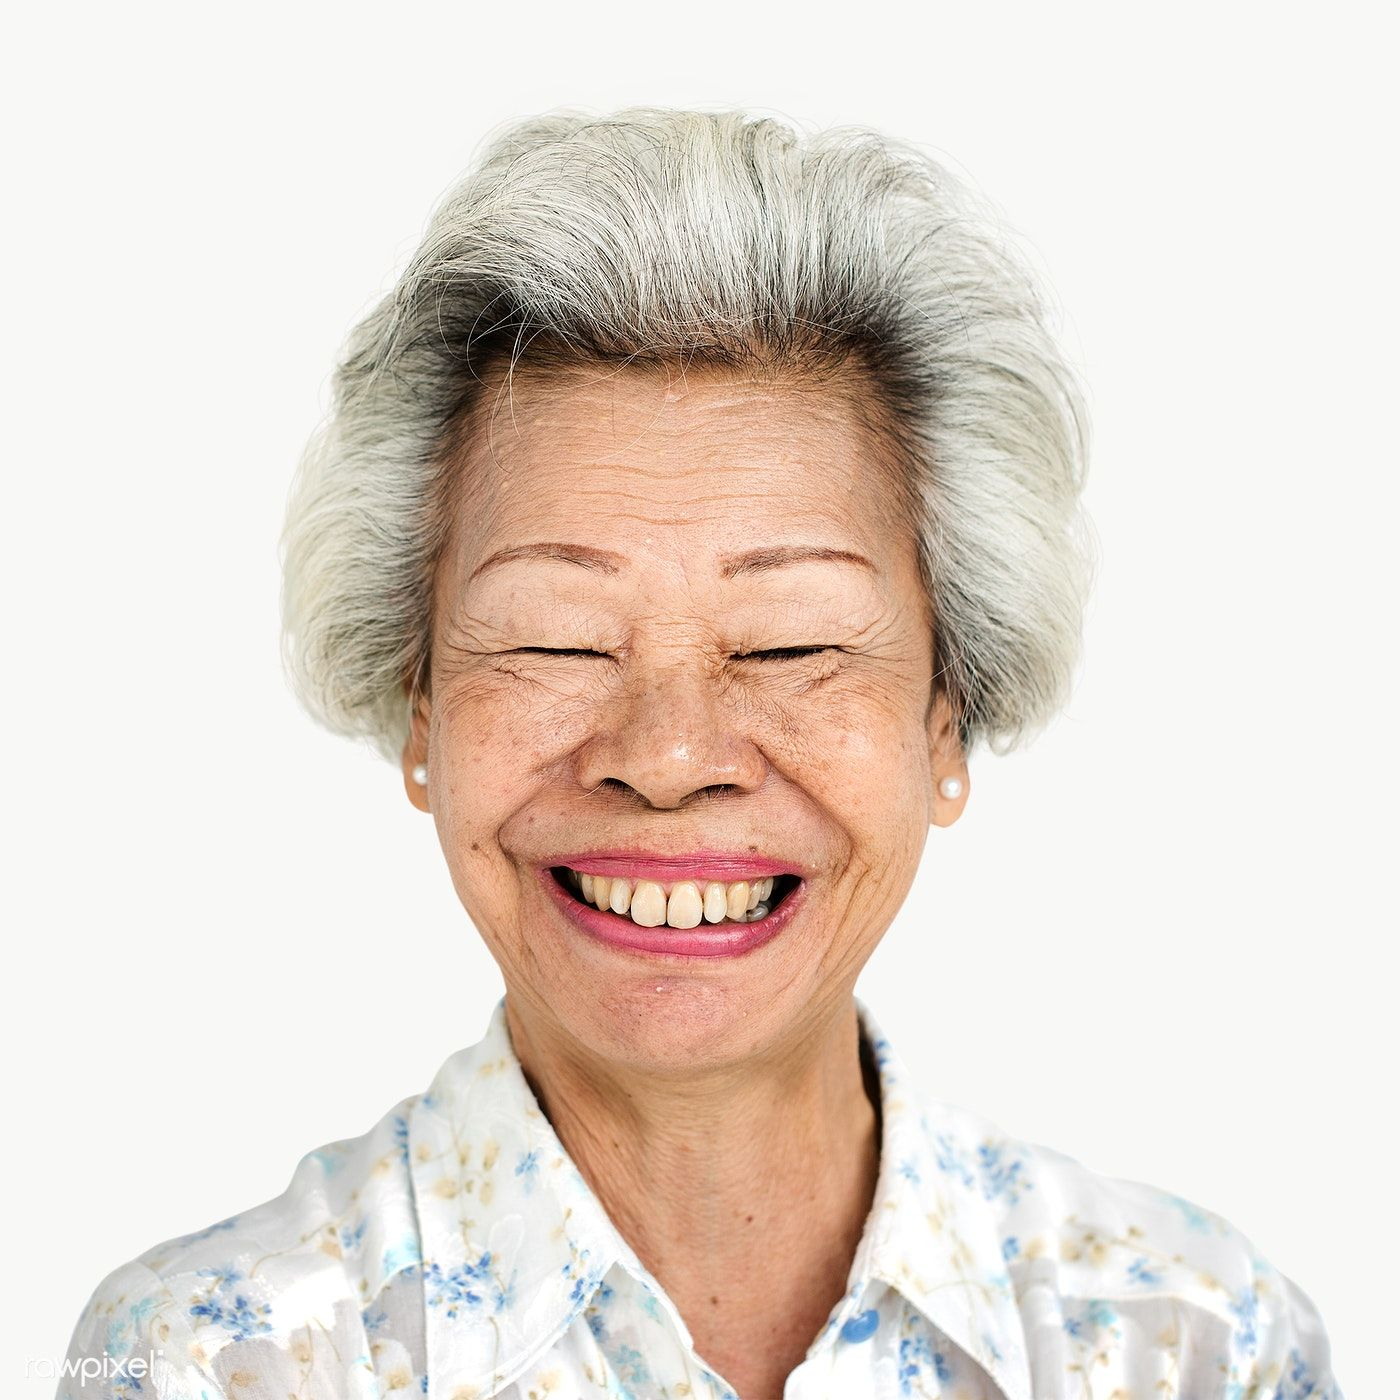 Bart Van Den Hoven download premium png of happy old woman transparent png